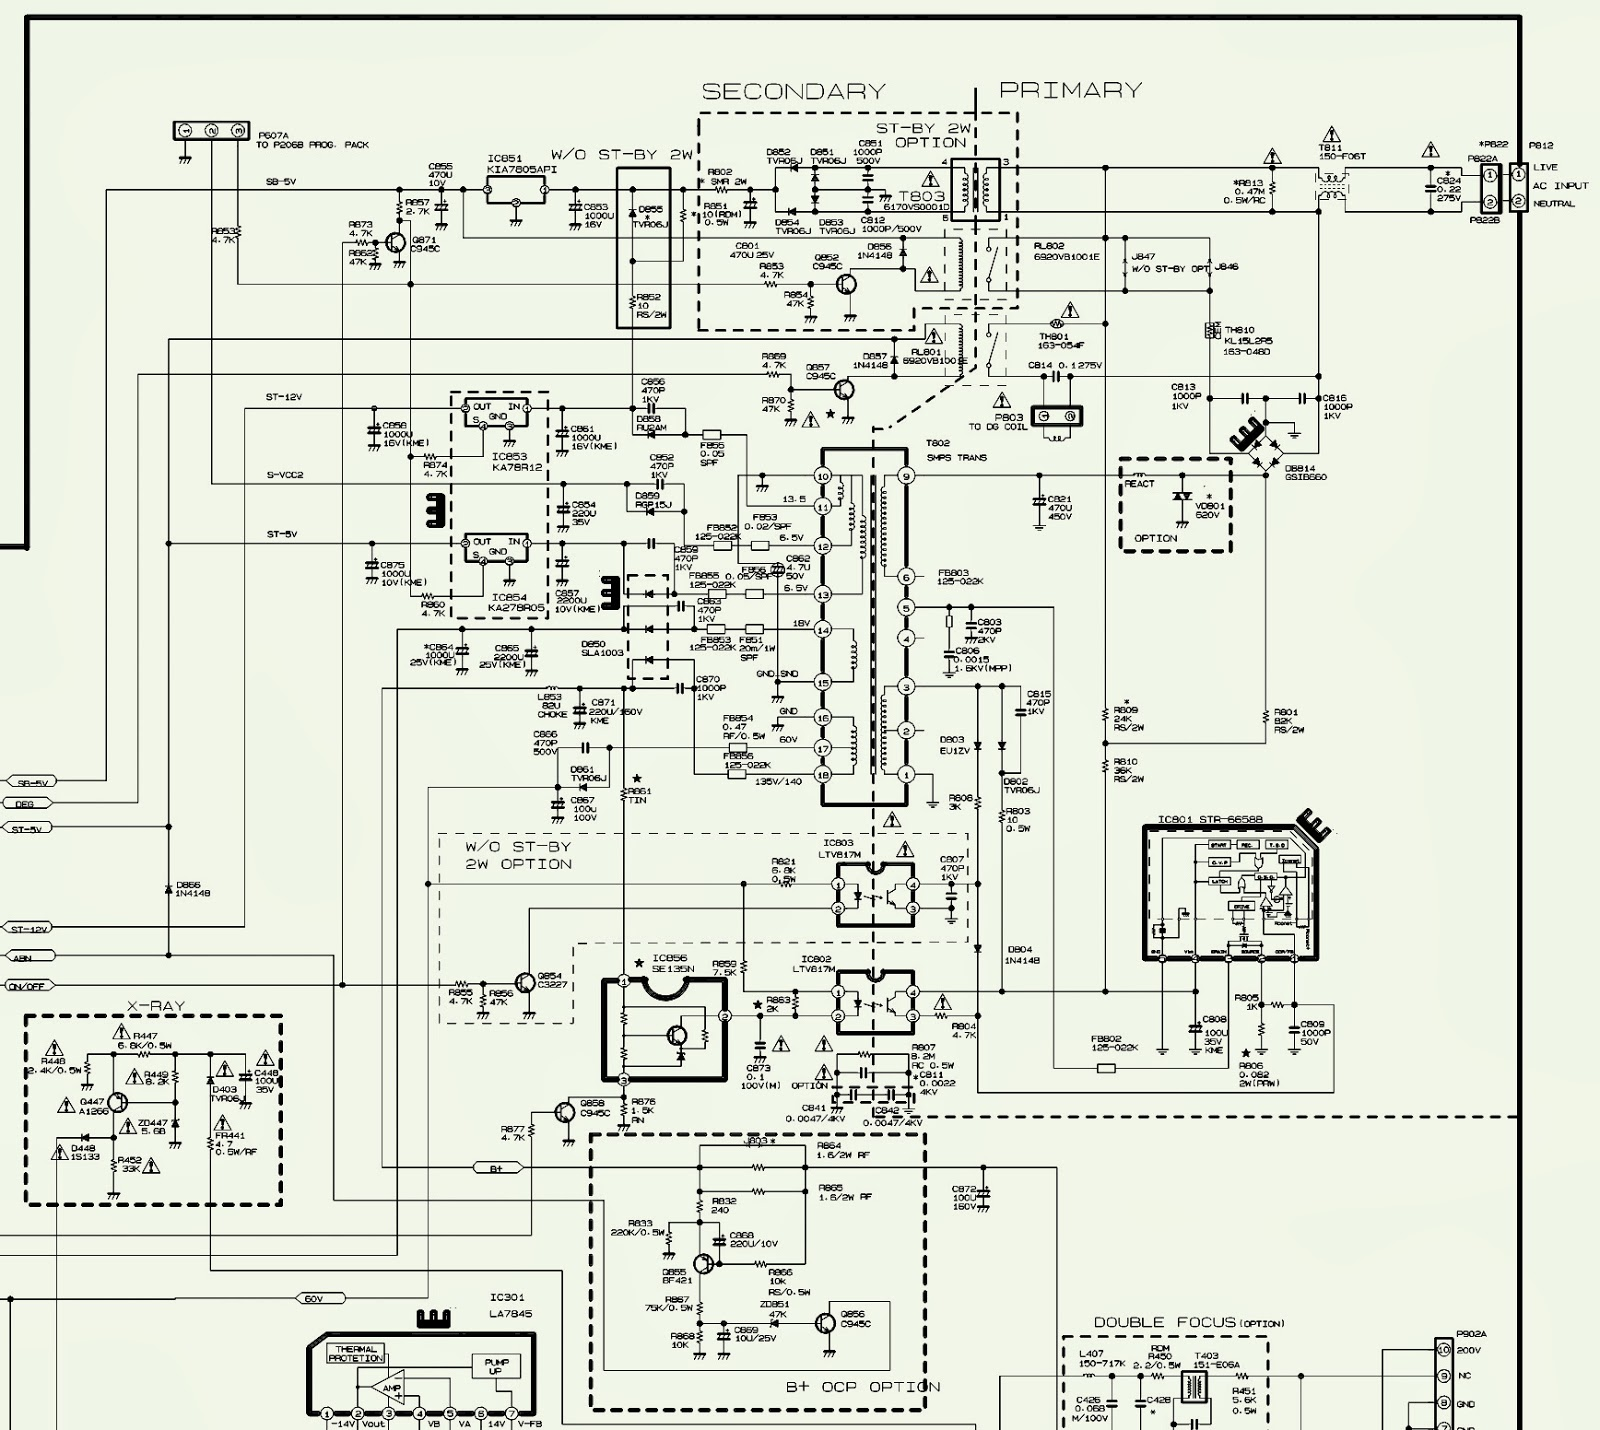 medium resolution of tv schematic diagrams wiring diagram go led tv schematic diagram books